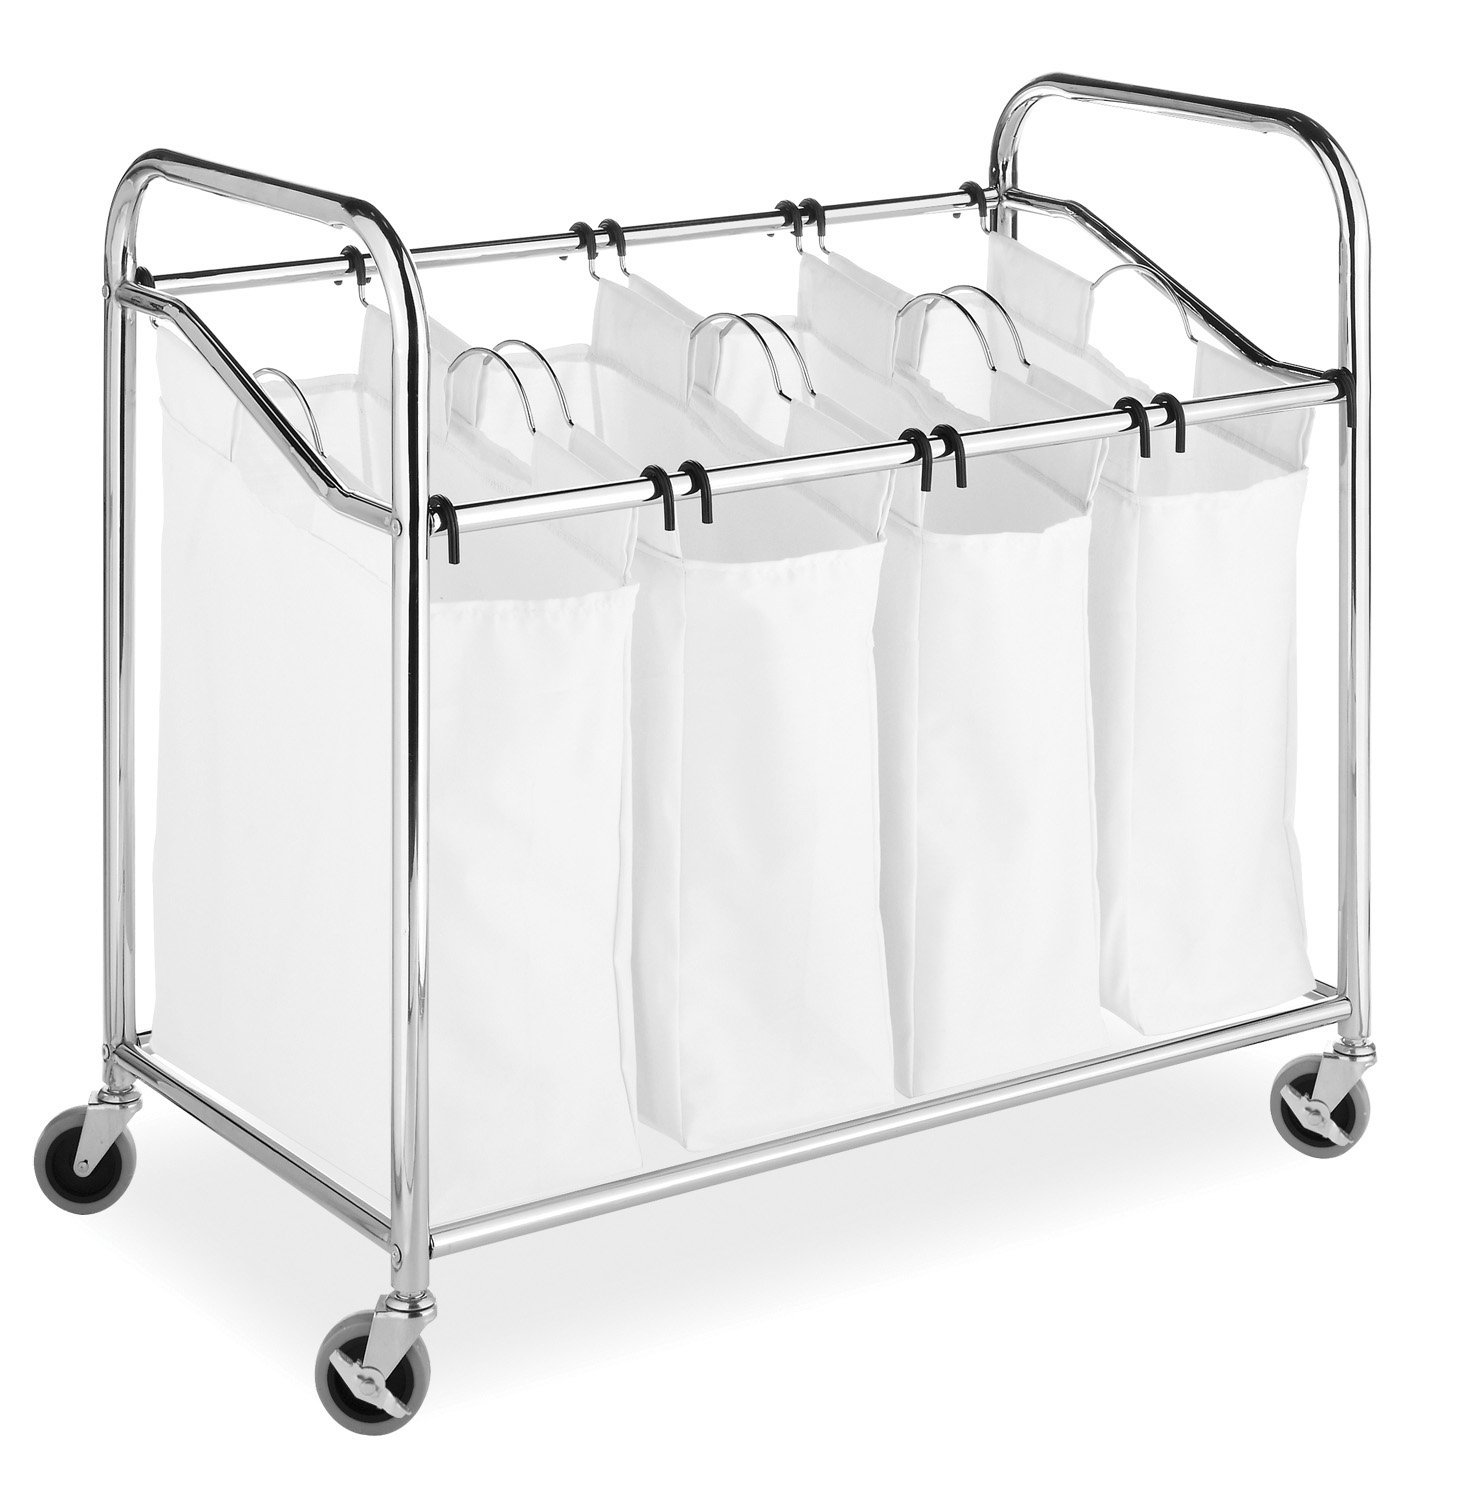 Whitmor 4 Section Rolling Laundry Sorter - 4 Removable Heavy Duty Bags - Chrome by Whitmor